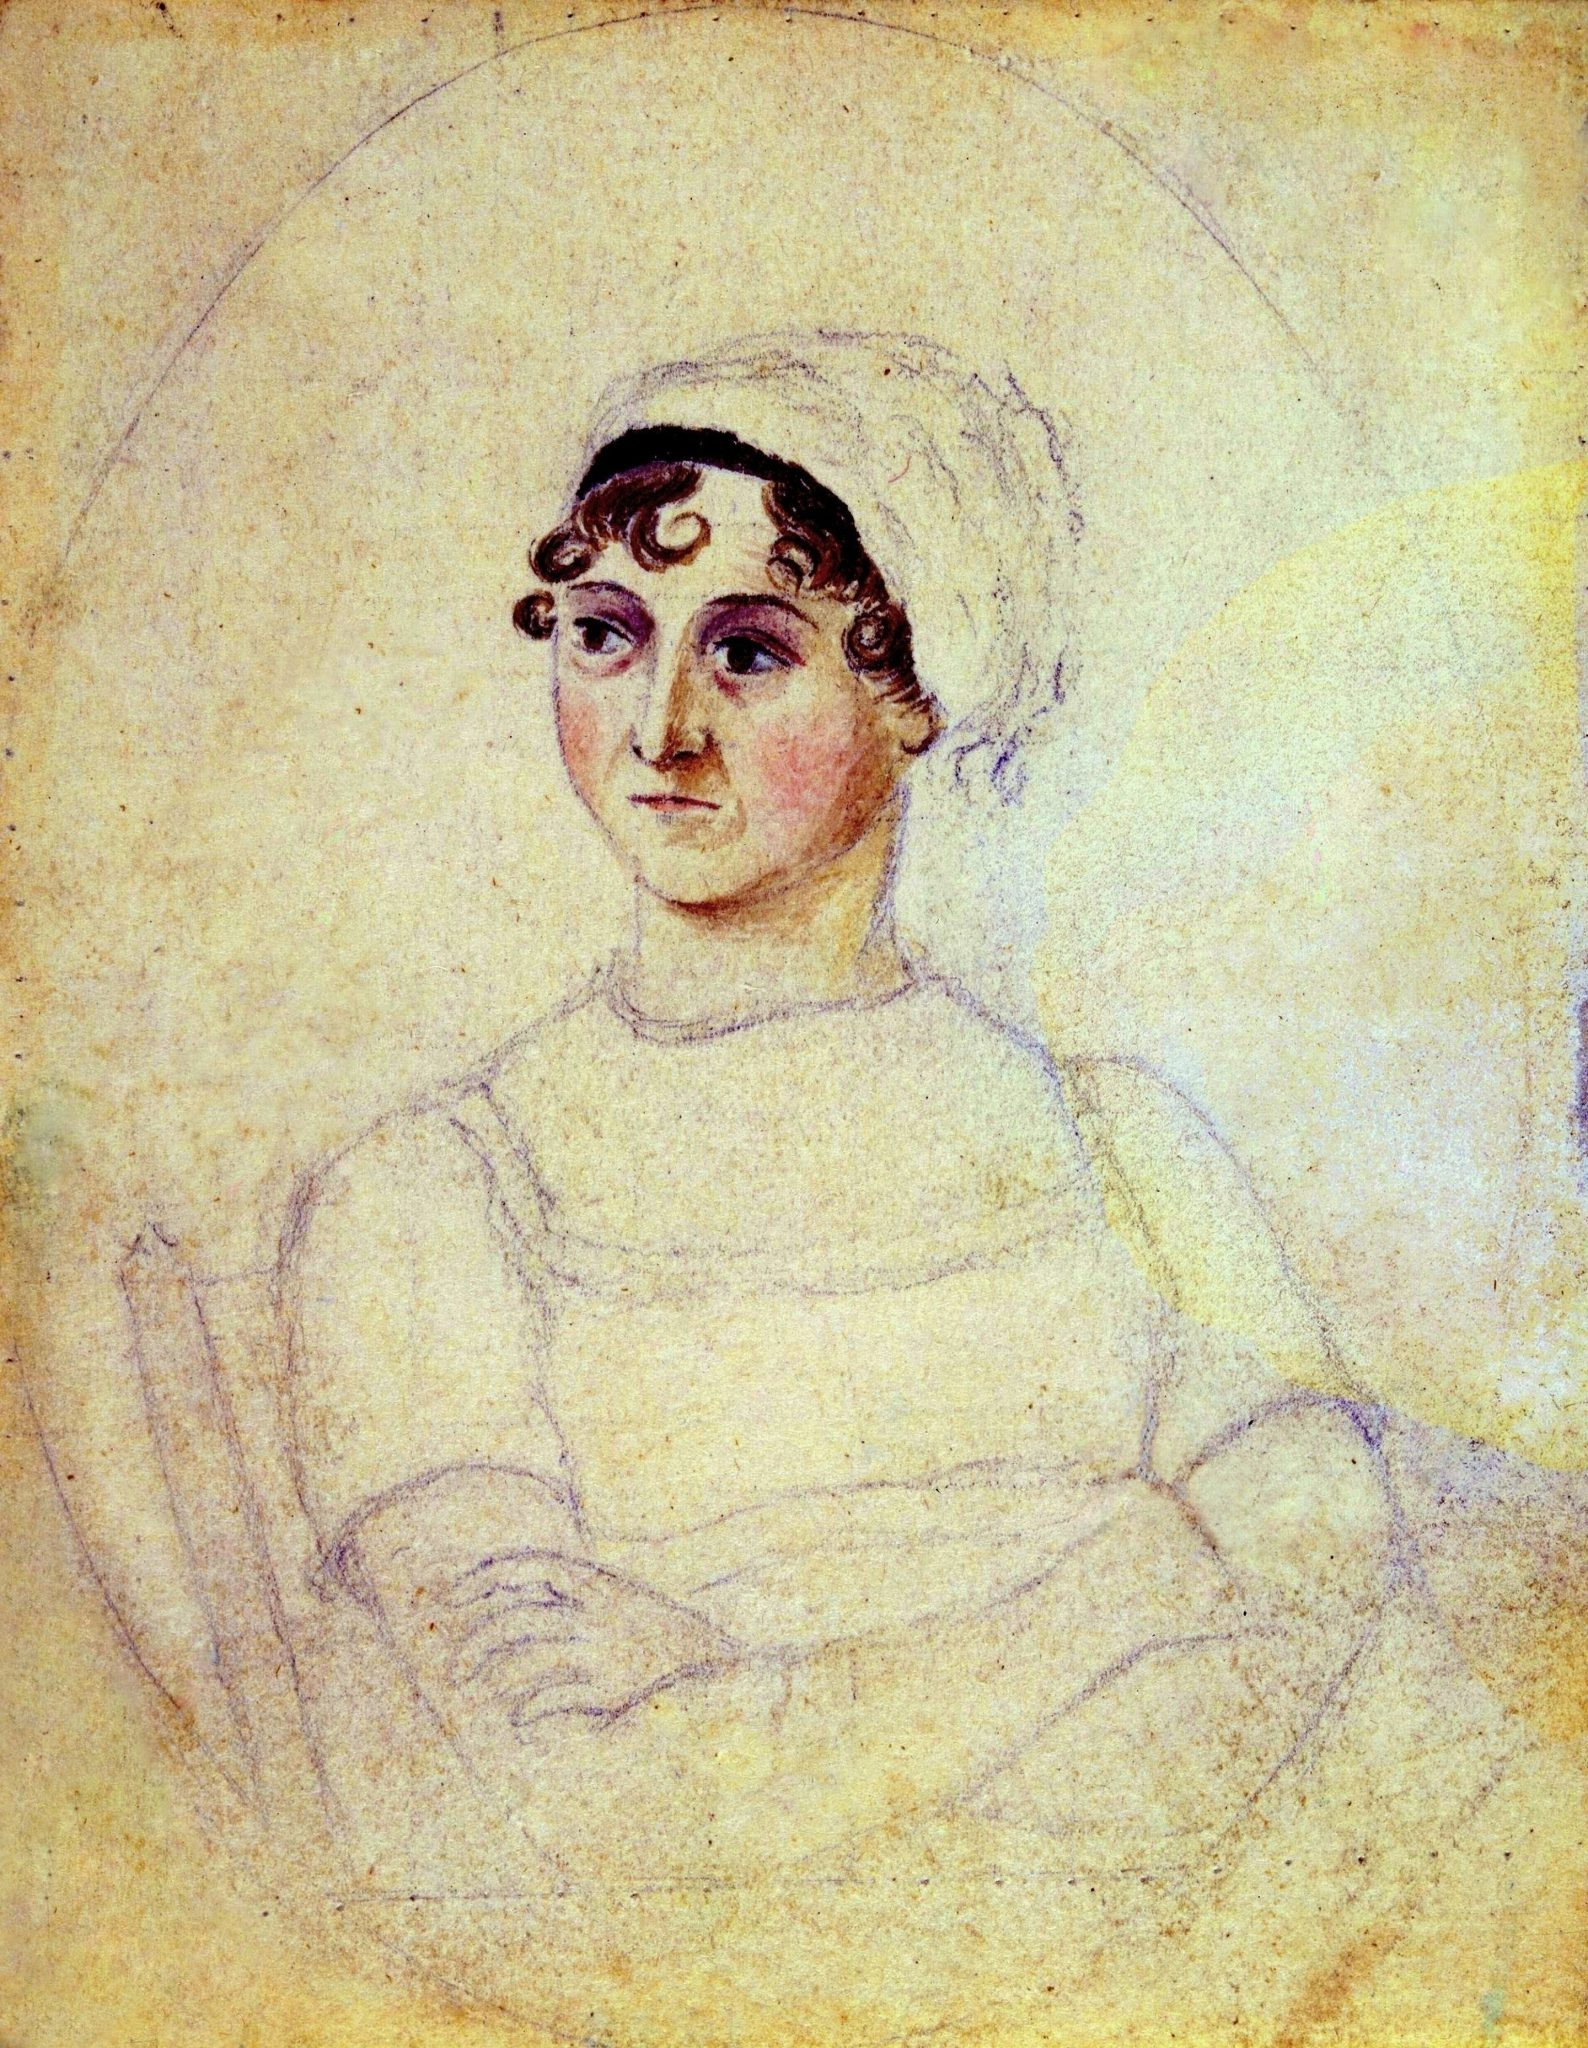 Jane Austen, in 1810, when she was 35 years old. Pencil and watercolor, by her sister Cassandra Austen. Jane was born in 1775, and died in 1817, most likely of Addison's Disease. This portrait was made while and her sister and their mother lived at Chawton Cottage, on England's South Coast.